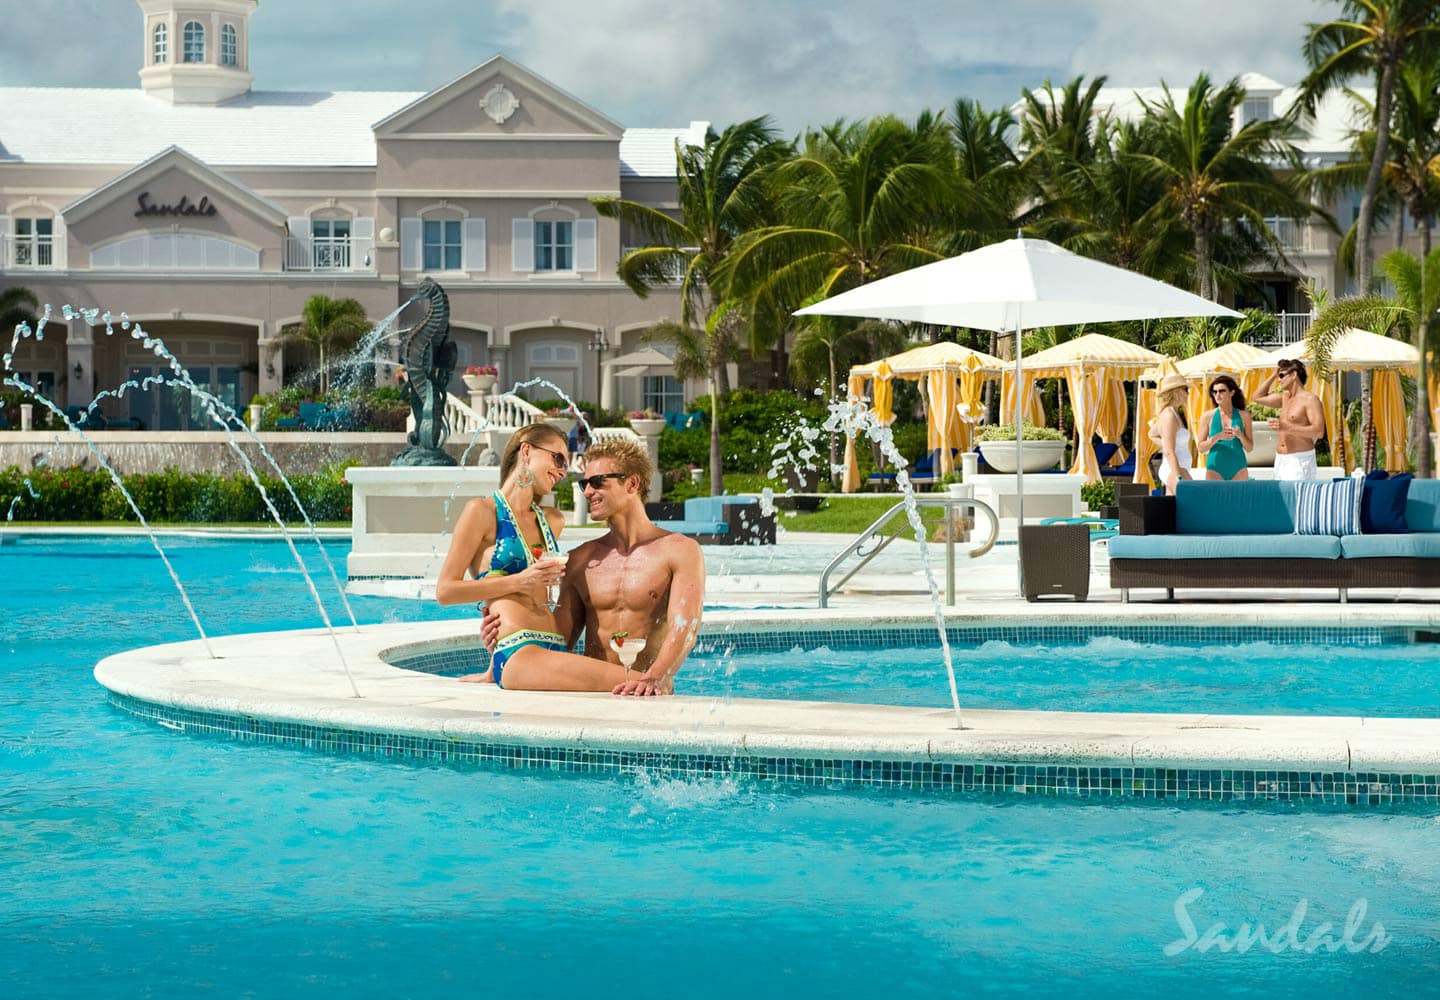 couple in the swimming pool on their honeymoon vacation at Sandals Emerald Bay Resort, part of Southern Travel Agency's all inclusive honeymoon vacations offer